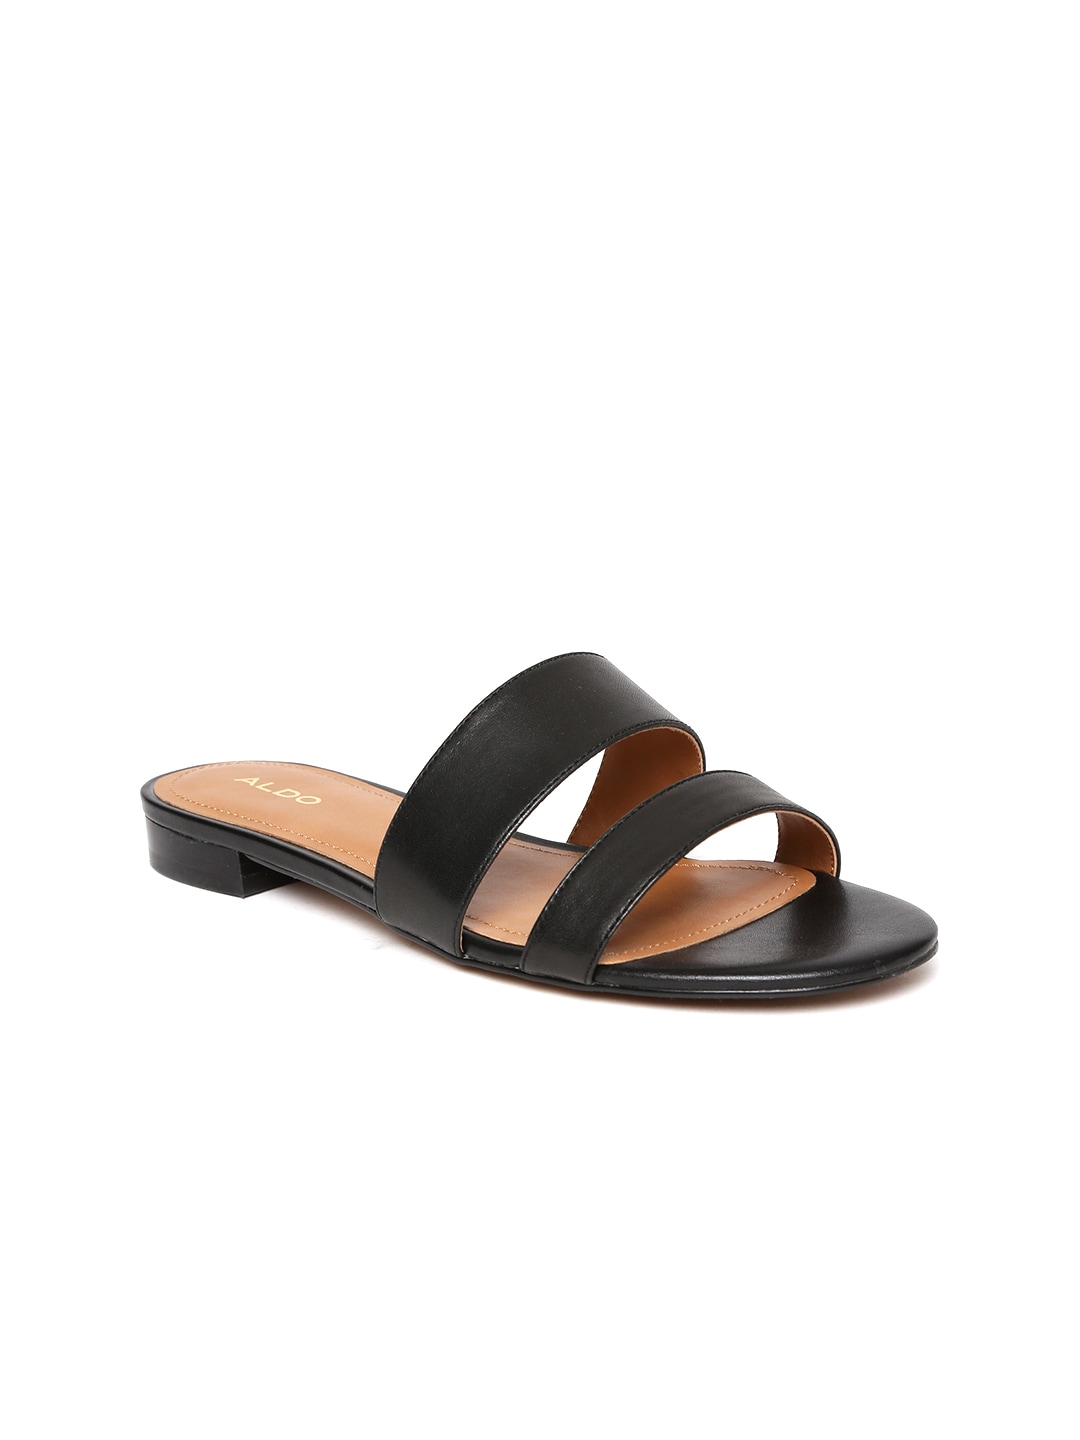 440f09b65 ALDO Shoes - Buy Shoes from ALDO Online Store in India